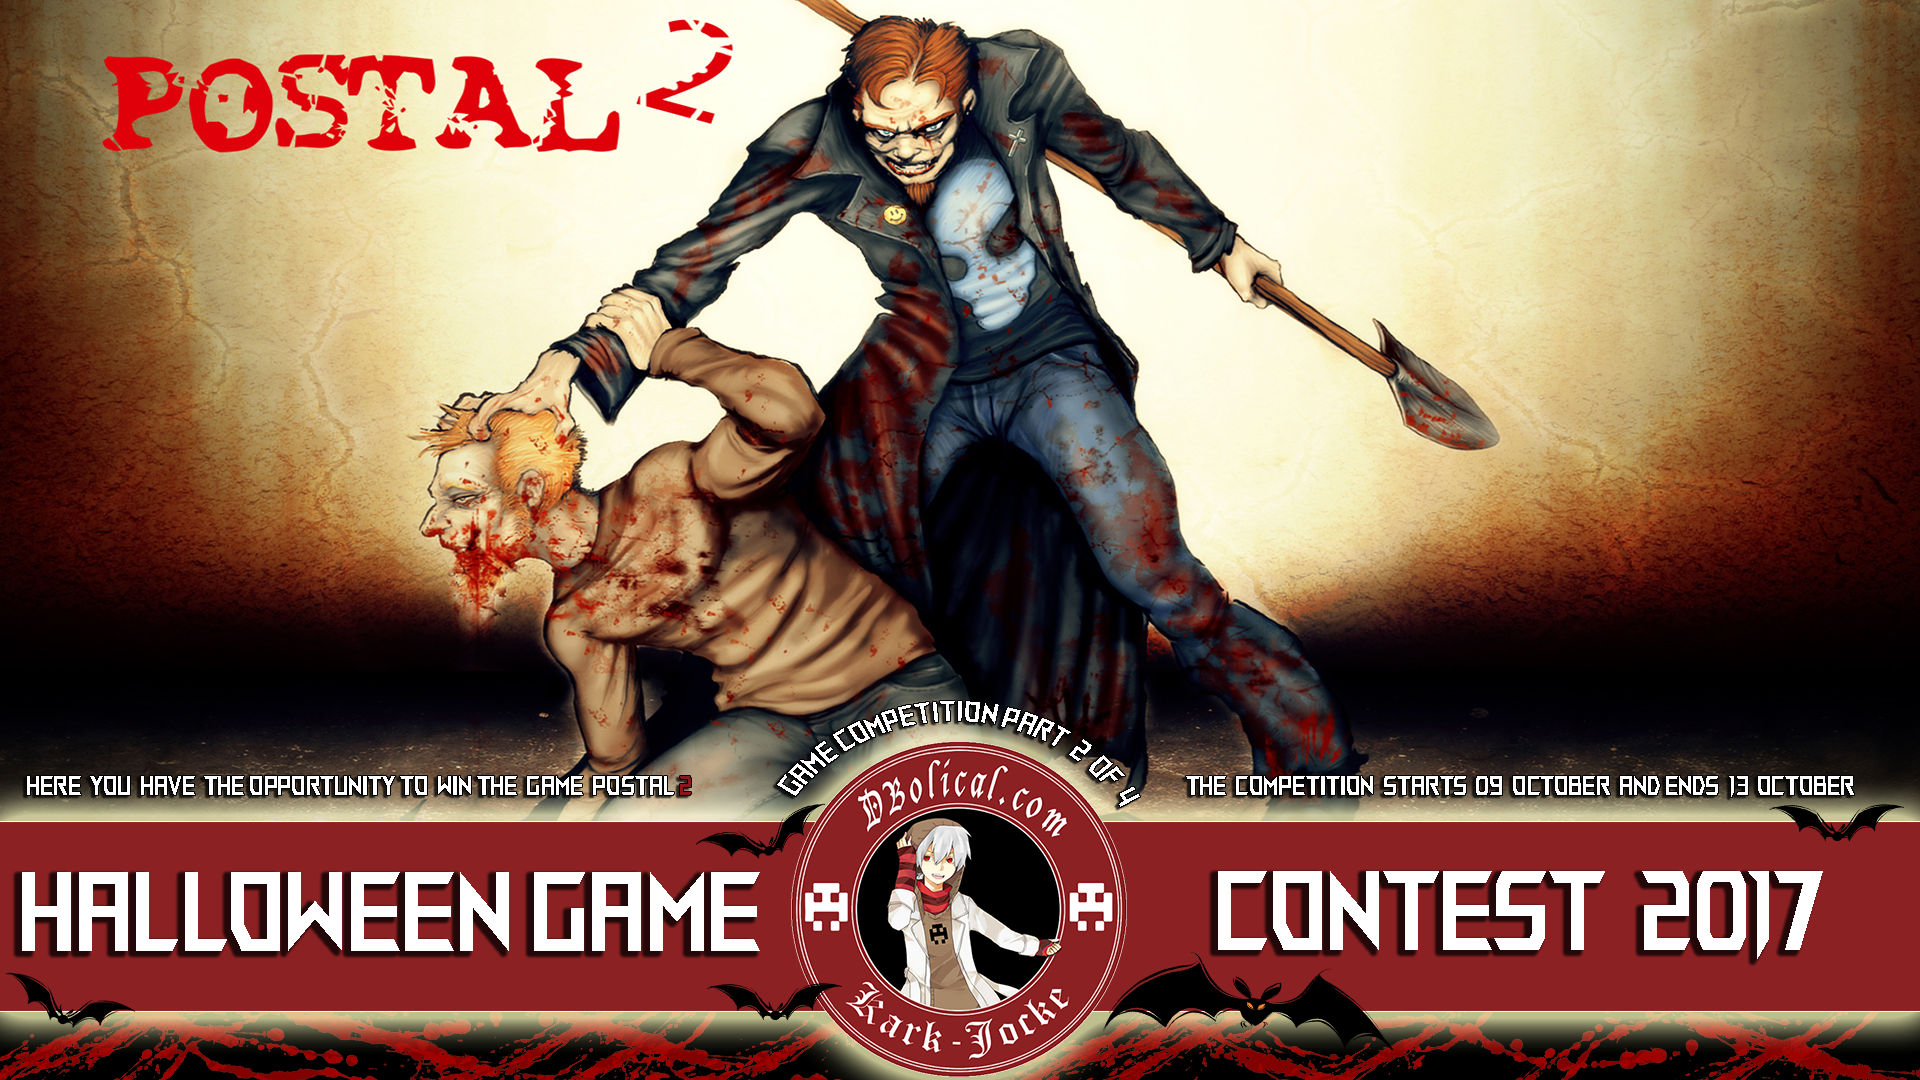 K J Halloween Game Competition Part 2 Of 4 News   POSTAL 2 ...